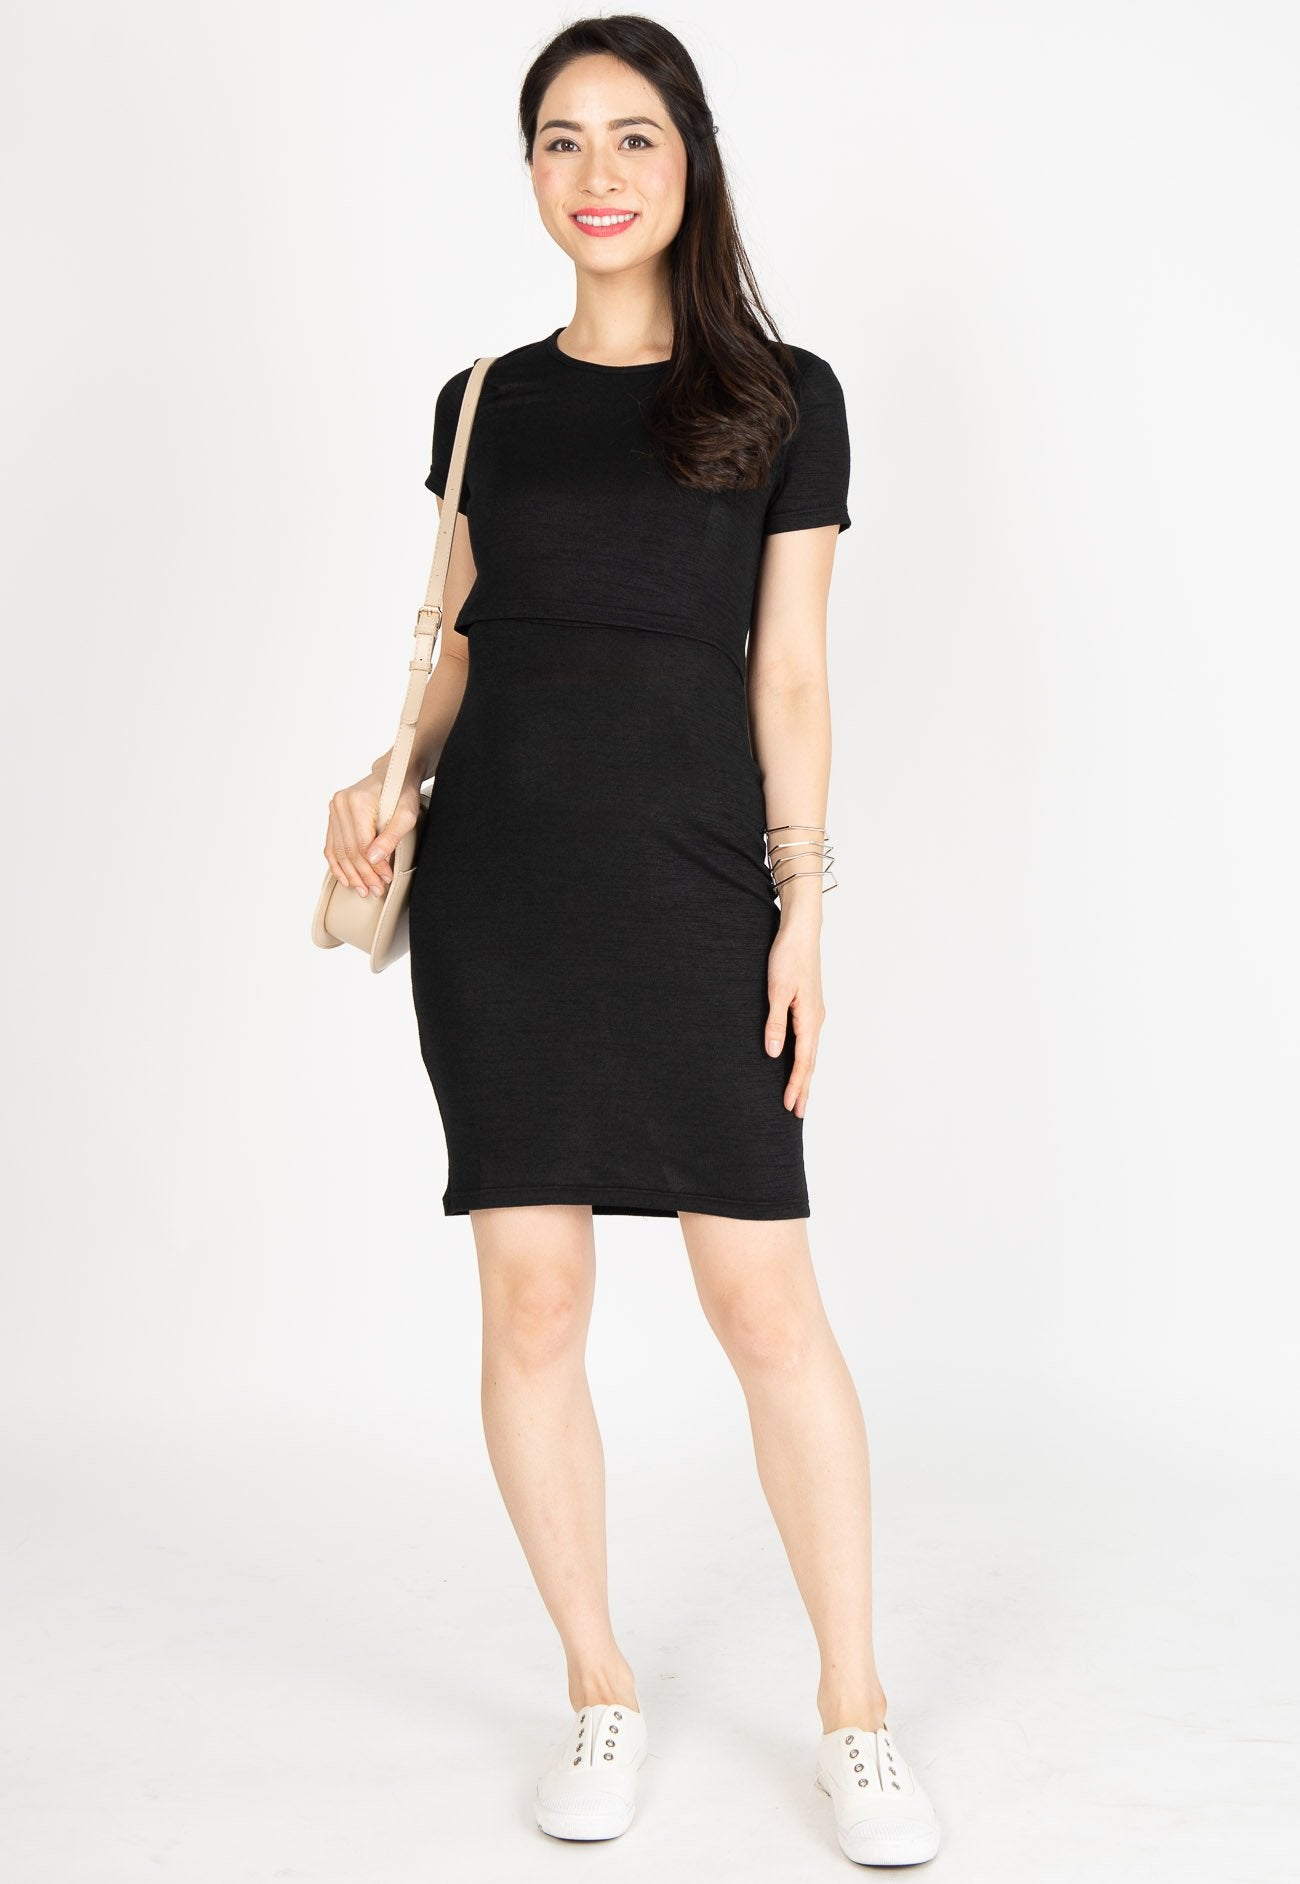 Ever Comfort Nursing Dress in Black  by Jump Eat Cry - Maternity and nursing wear